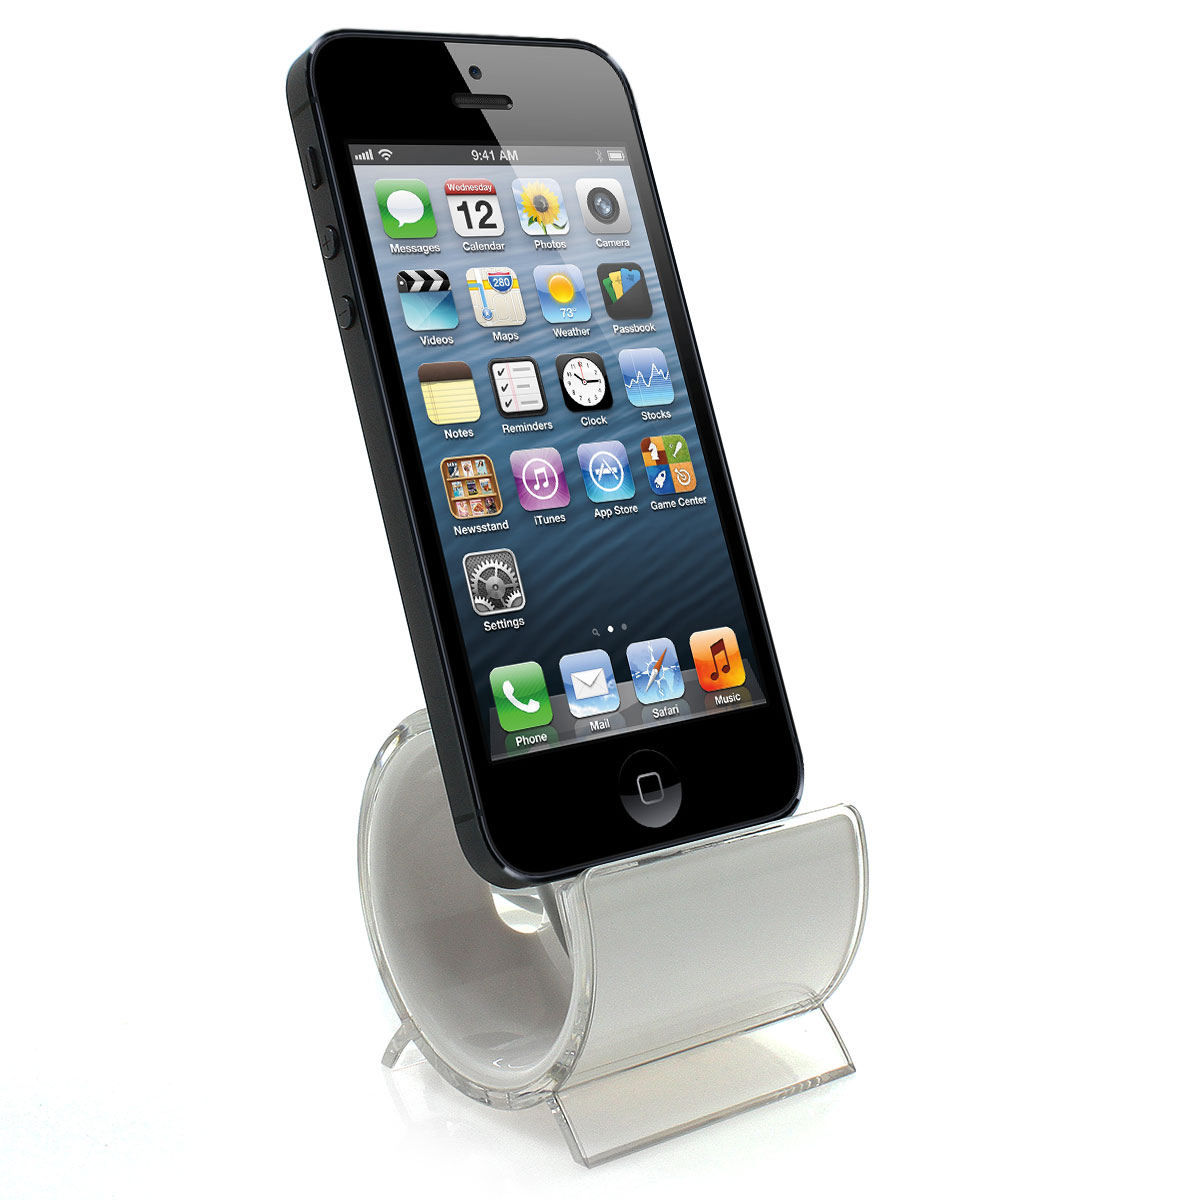 ladestation f r iphone 5 docking station design ladeger t weiss ebay. Black Bedroom Furniture Sets. Home Design Ideas